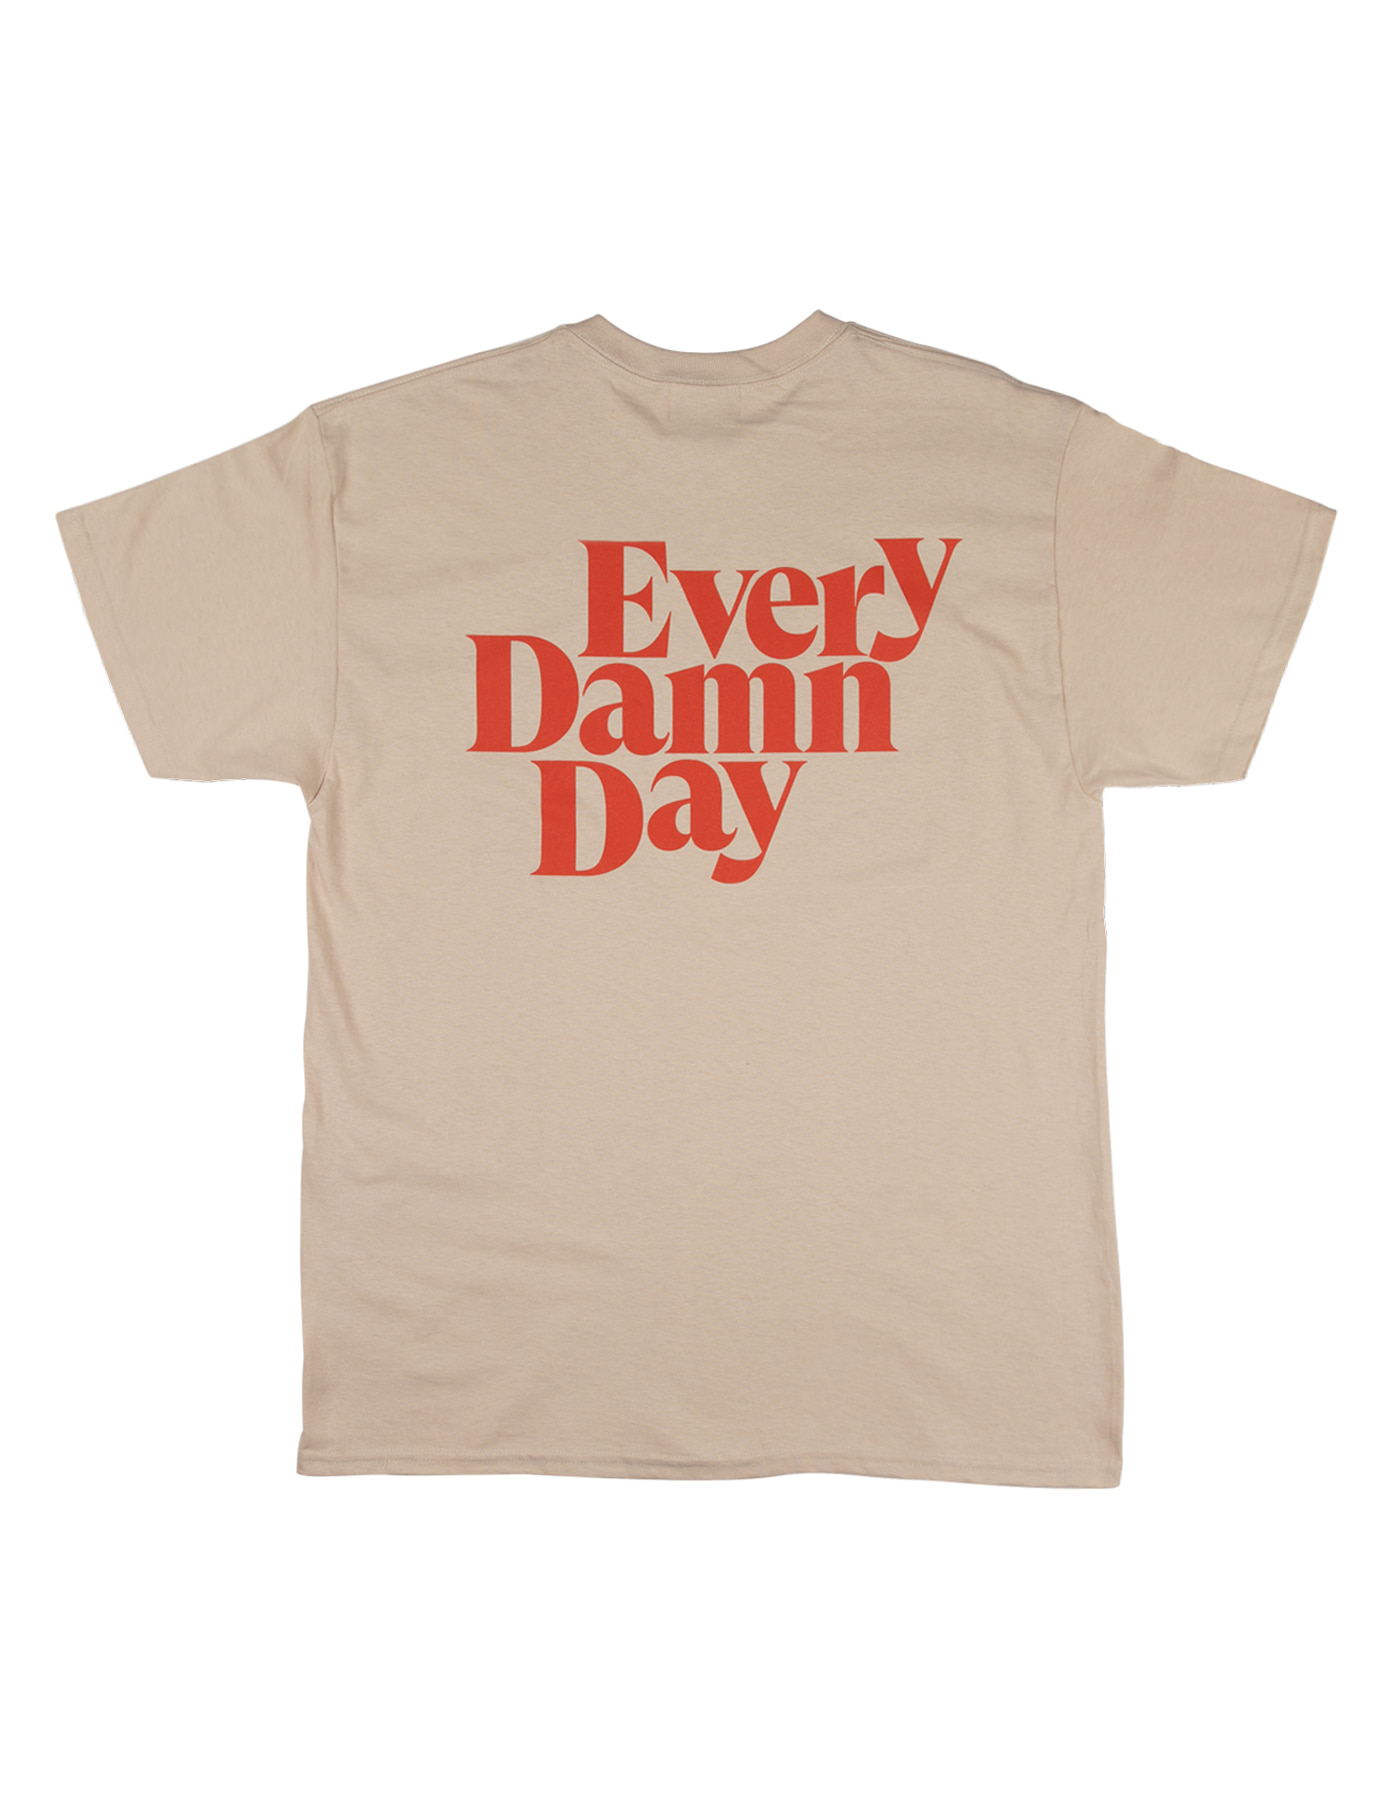 Every Damn Day T-shirts - Sand/Orange